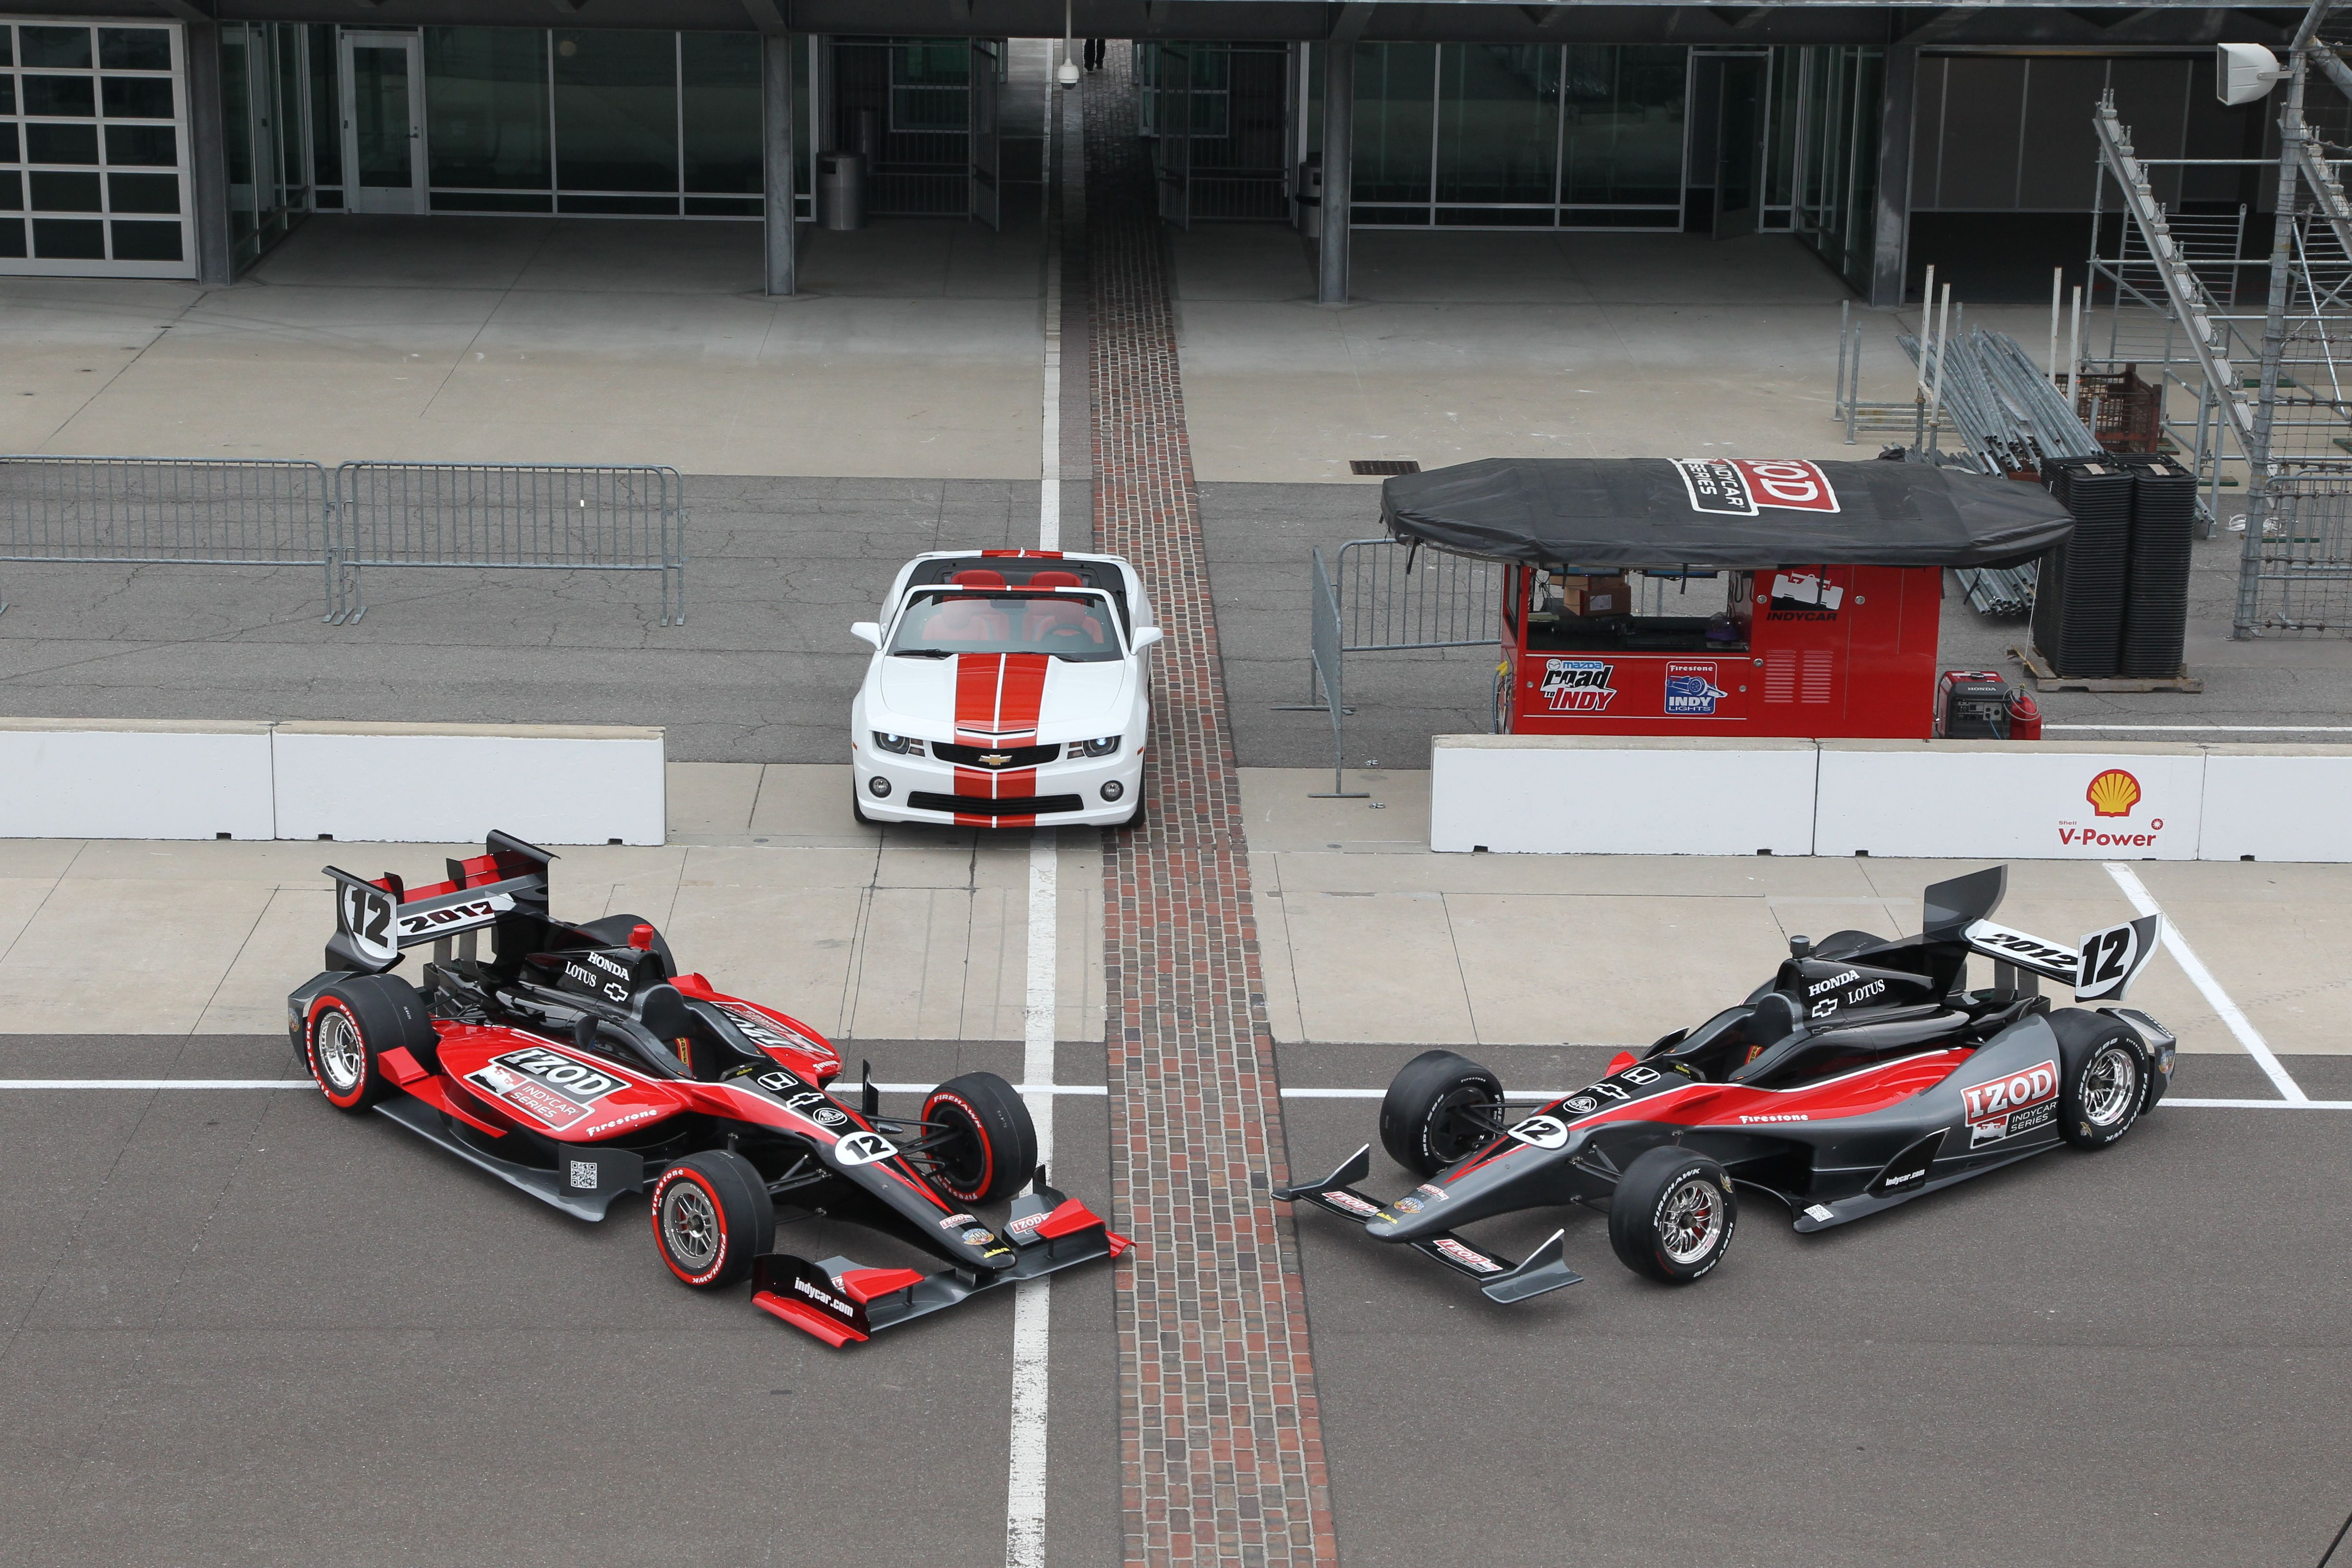 2012 Dallara IndyCar Revealed…Sort of